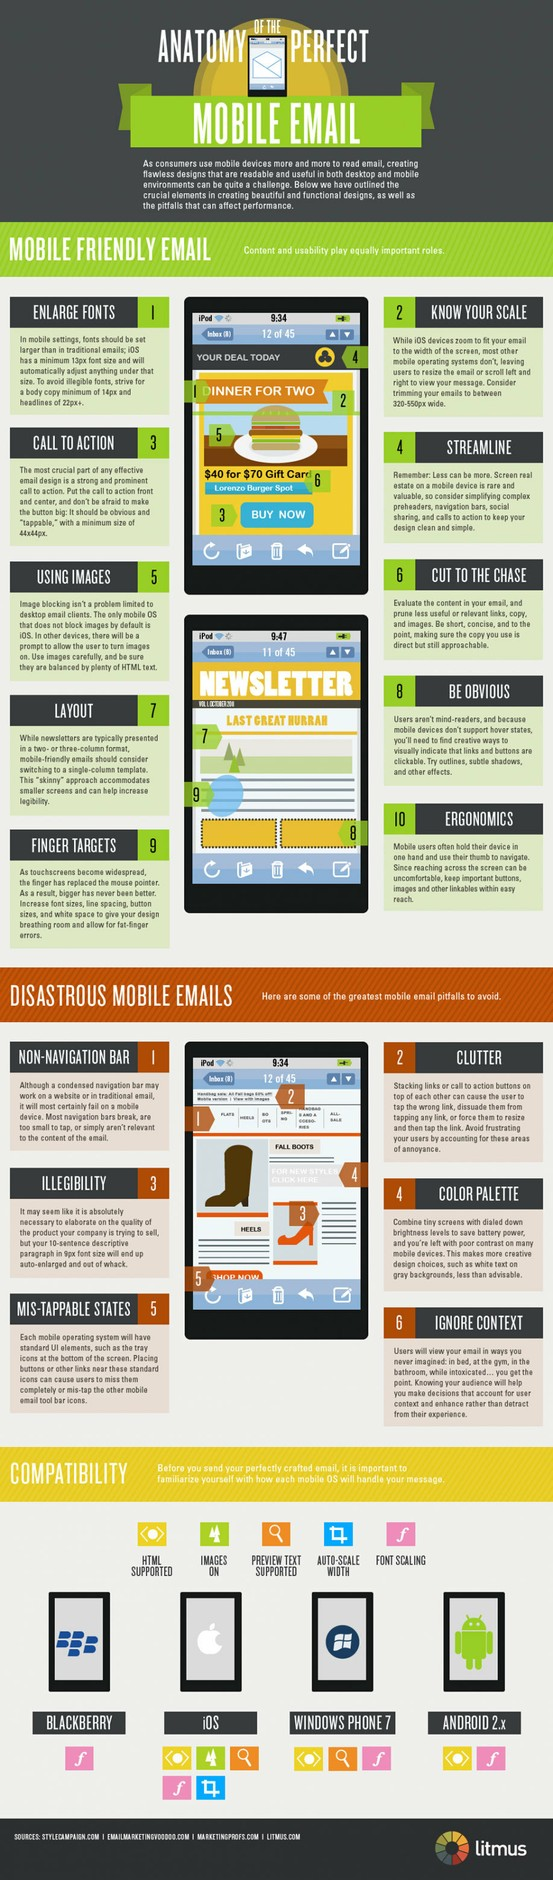 Anatomy of the perfect mobile email